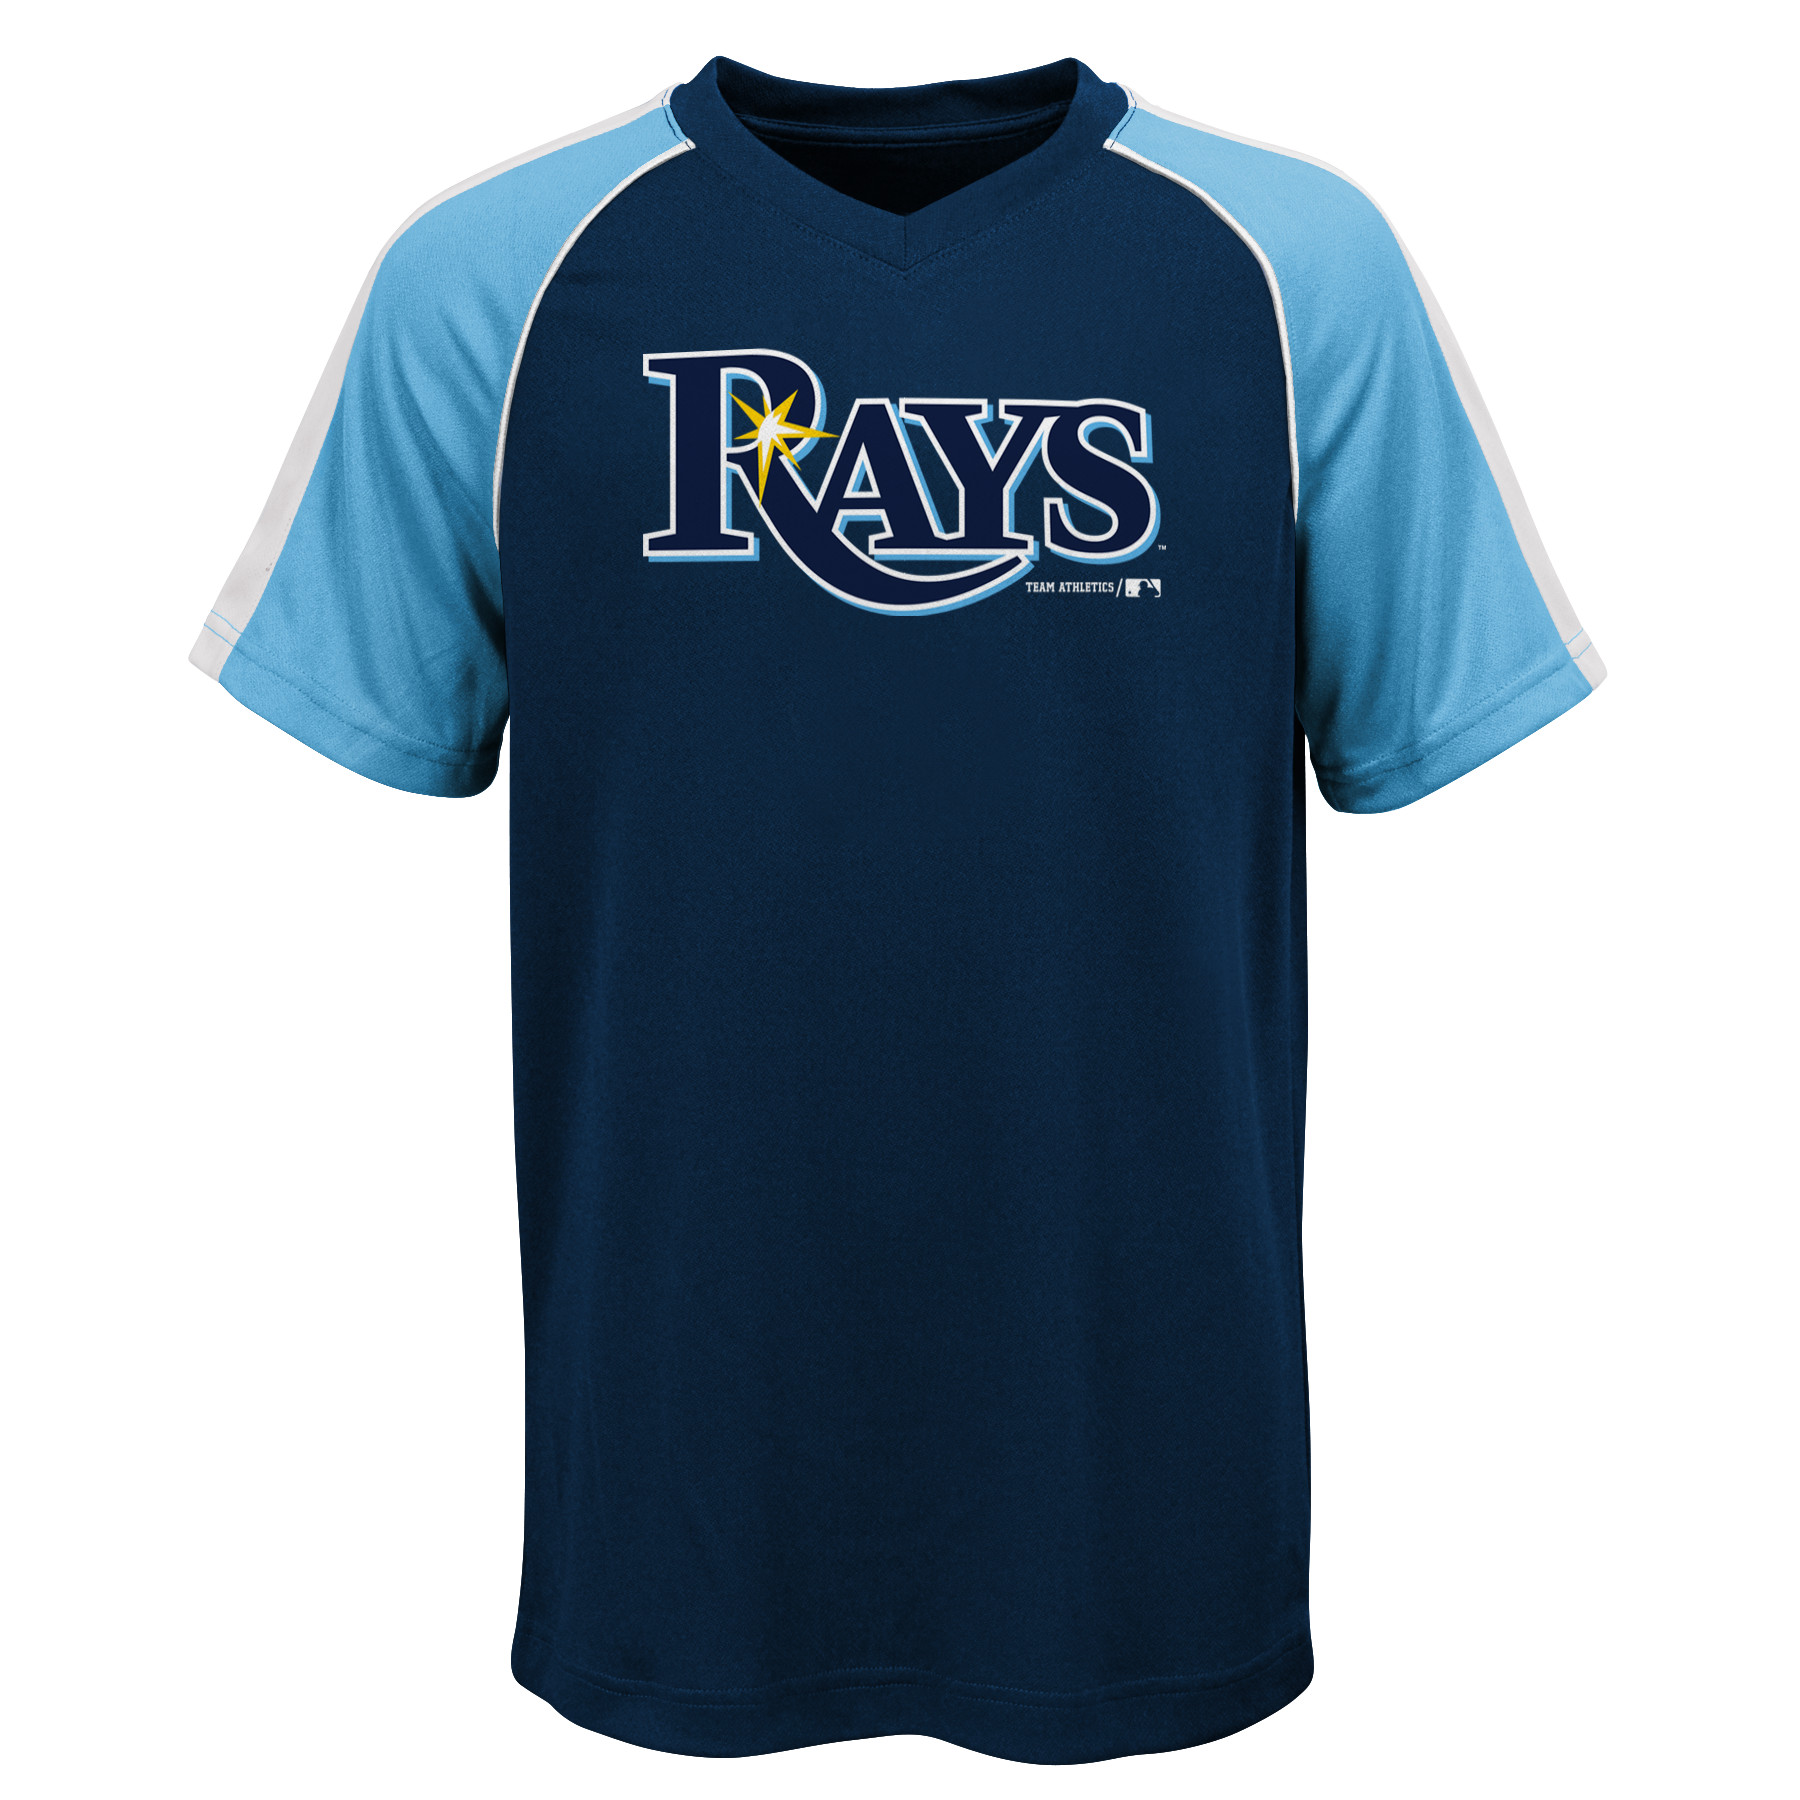 MLB Tampa Bay RAYS TEE Short Sleeve Boys Fashion Jersey Tee 100% Polyester Pin Dot Mesh Jersey Team Tee 4-18